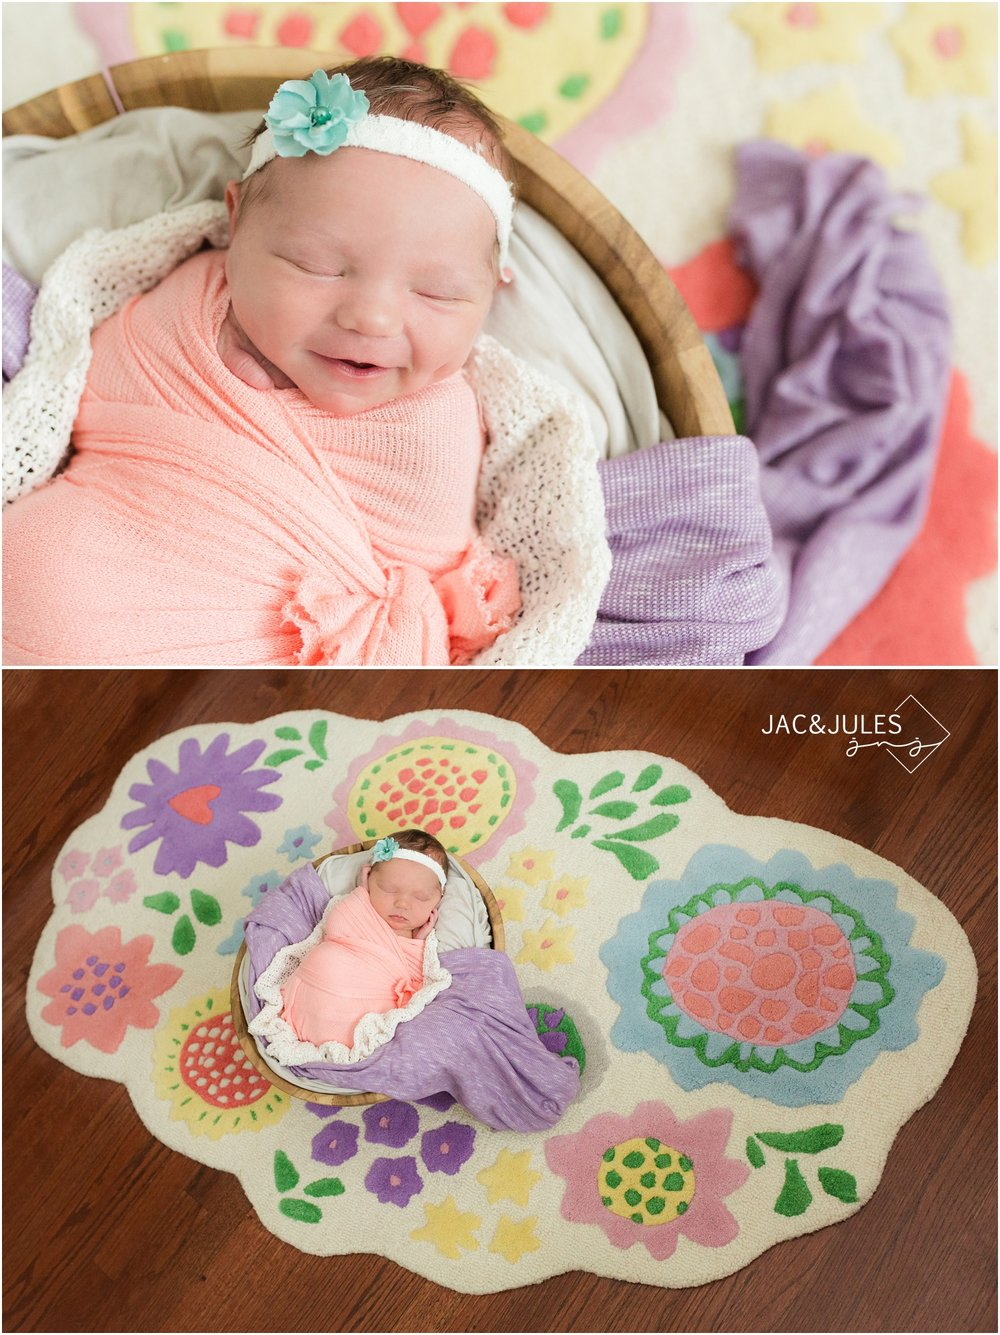 Colorful Newborn photo with Huge smile and dimple!